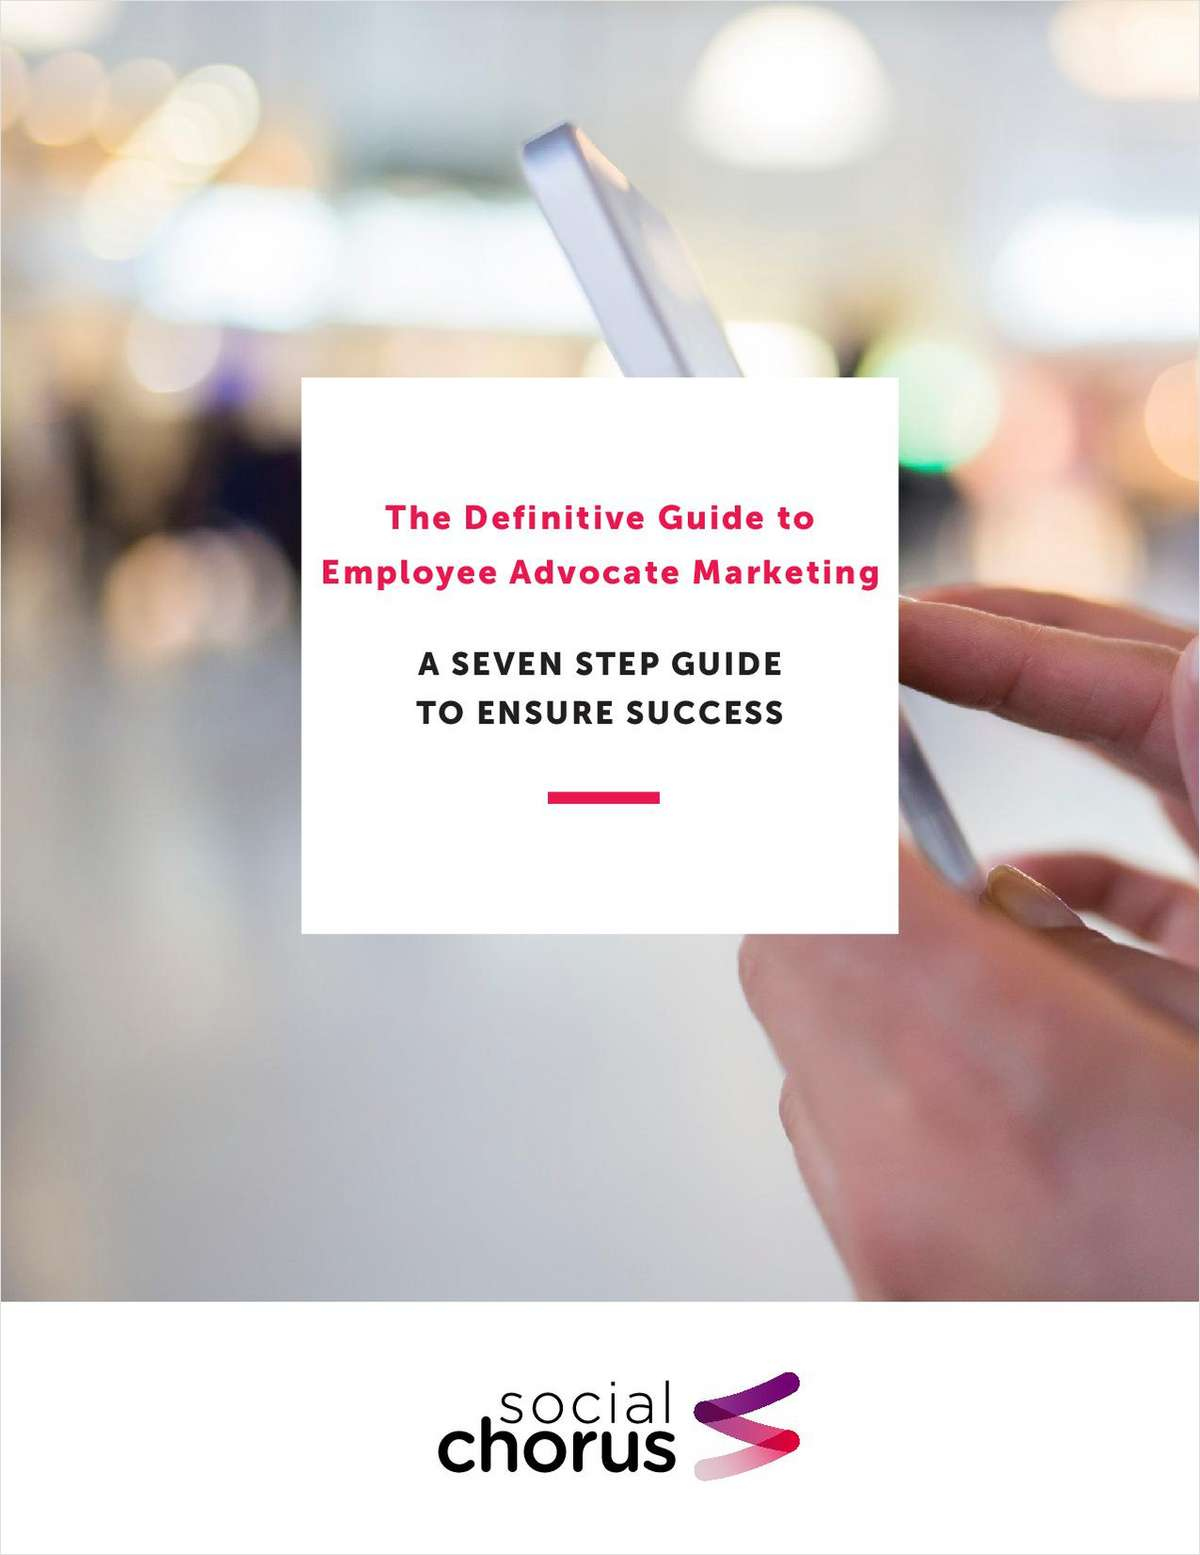 The Definitive Guide to Employee Advocate Marketing